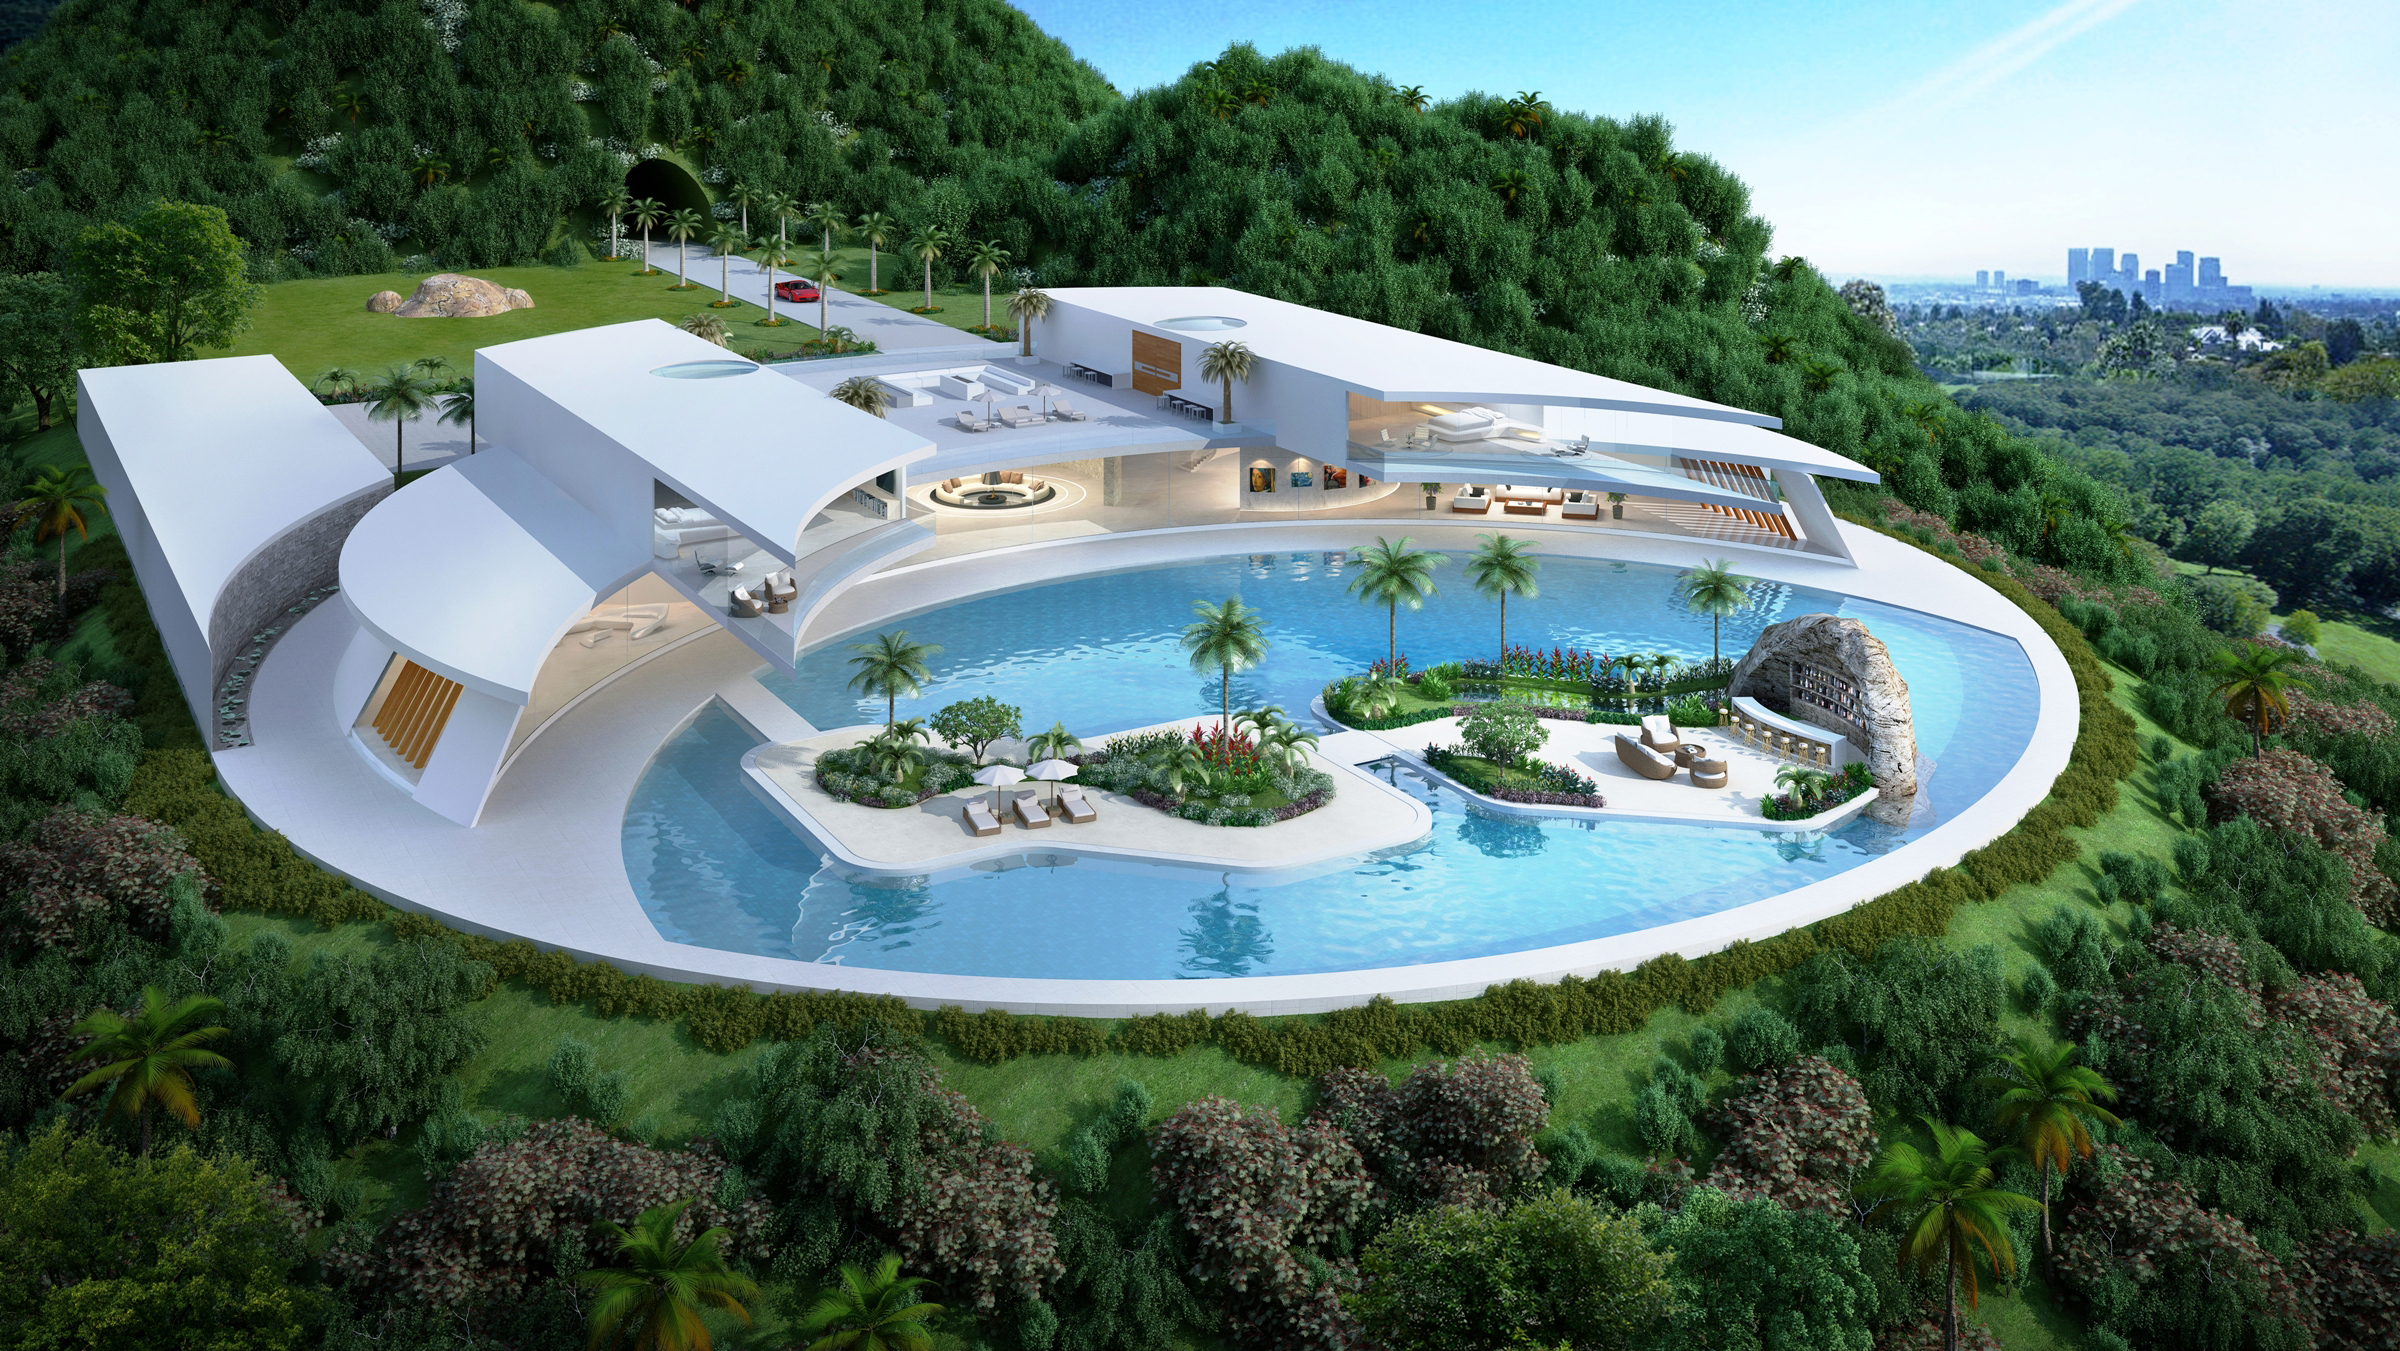 Asetti Launch New Super Home Designs. Movie Style Celebrity Homes To Match The Super Yacht